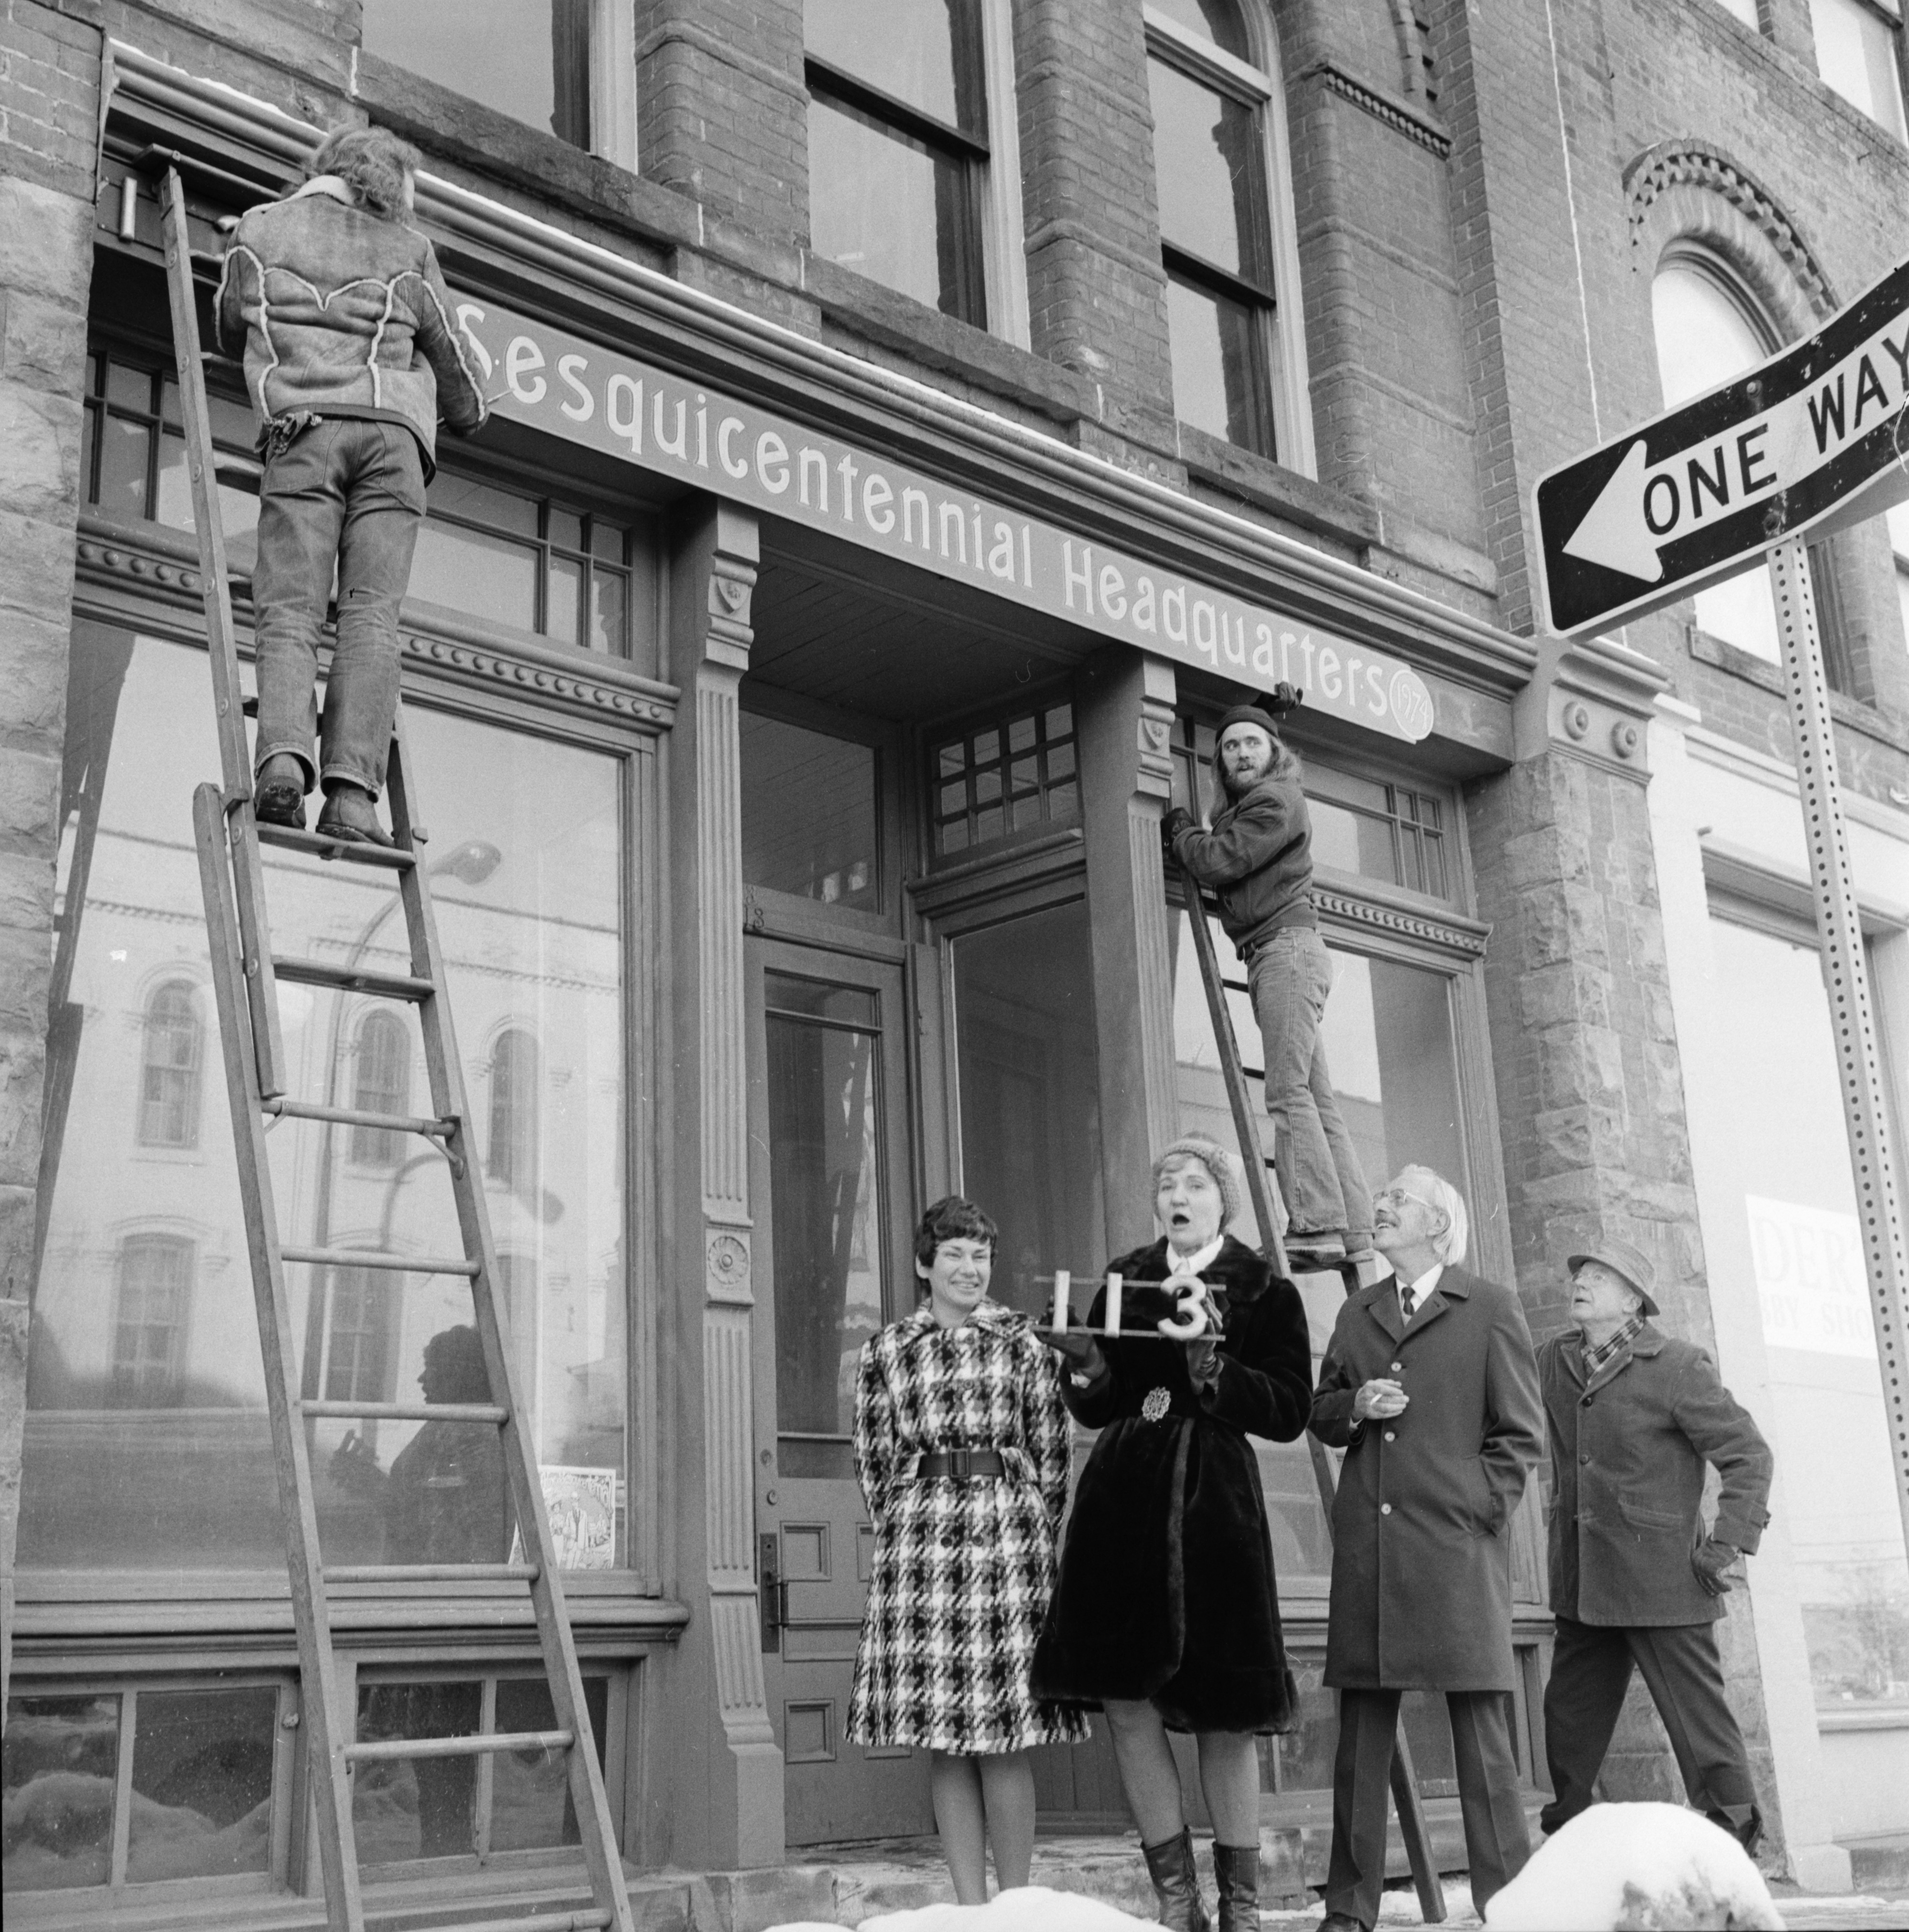 Sesquicentennial Headquarters Sign Hanging at Haarer-Walker Building, 113 W. Liberty, January 1974 image